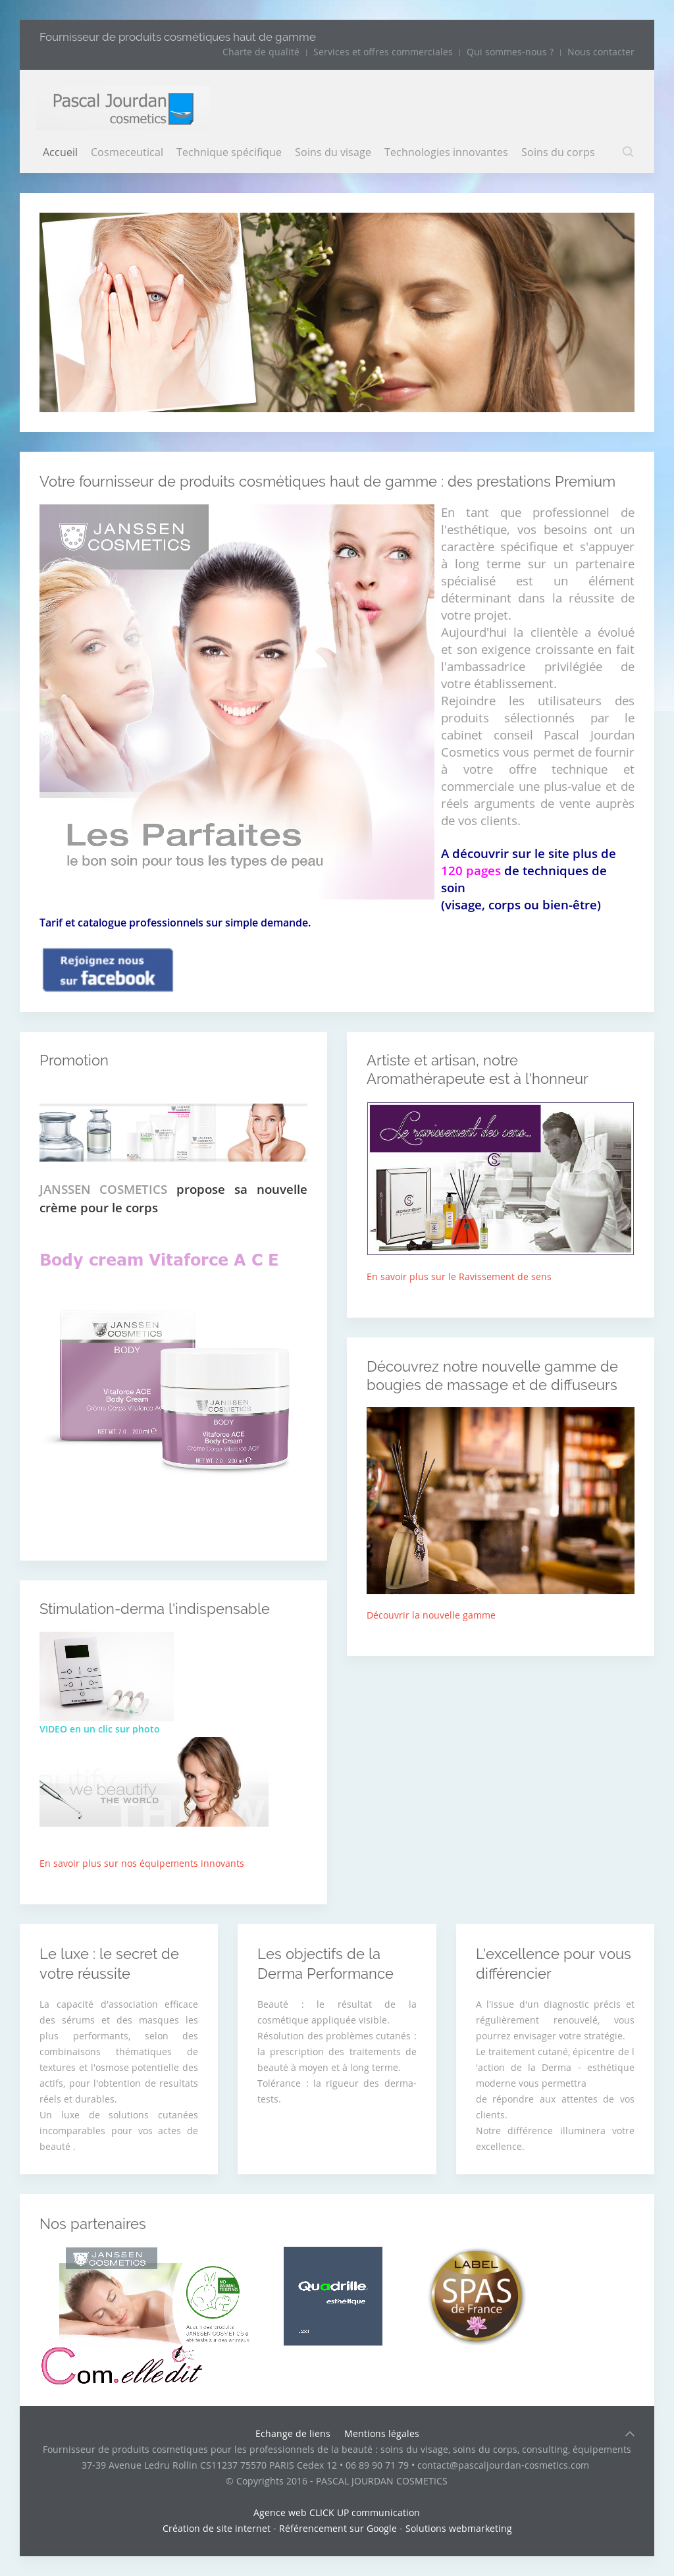 Pascal Jourdan Cosmetics Competitors, Revenue and Employees